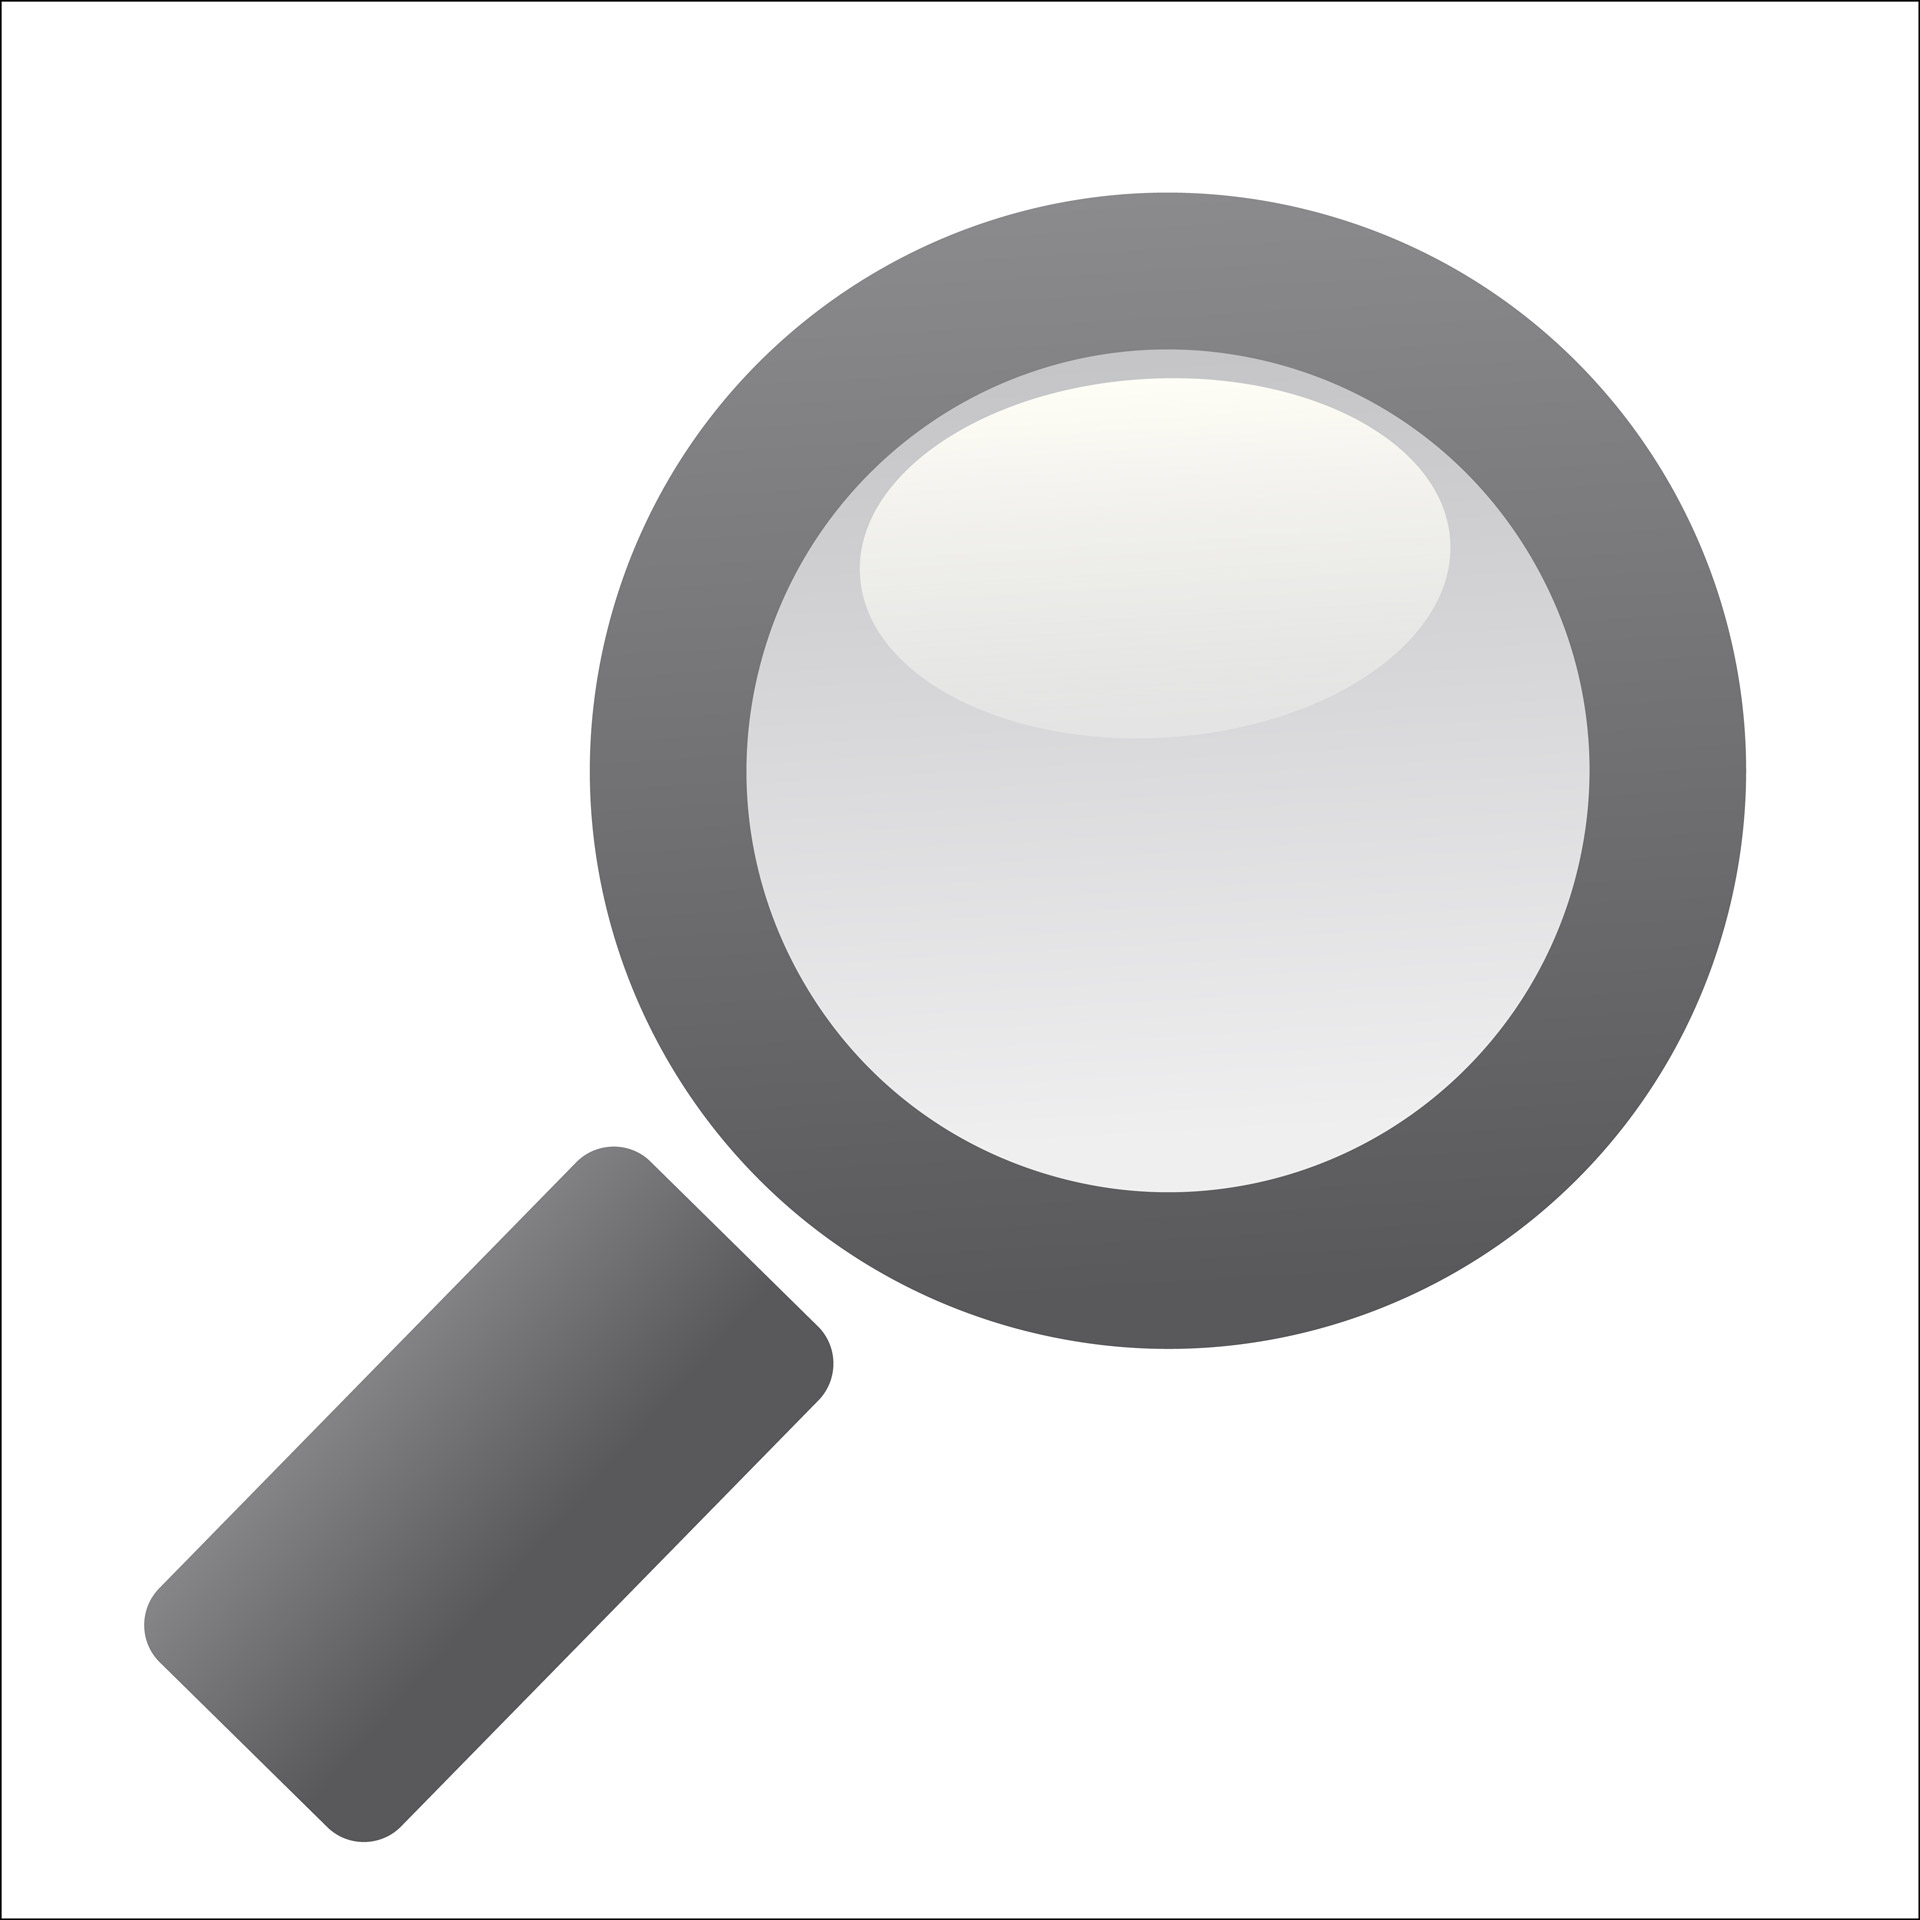 Magnifying clipart. Glass free stock photo